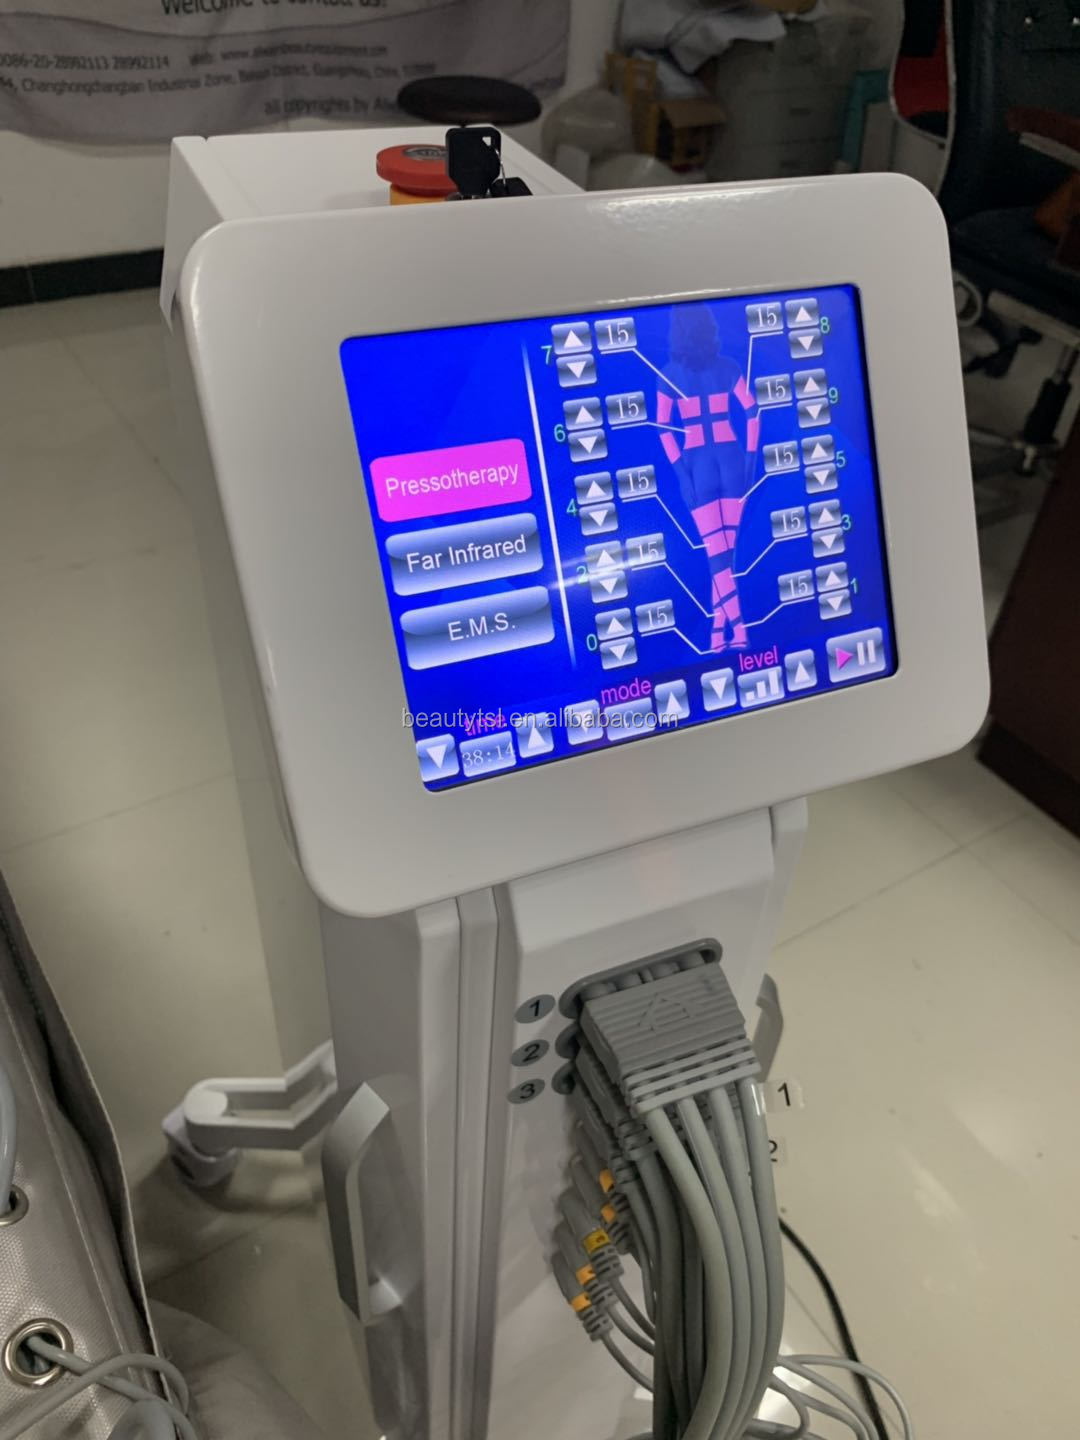 TSL-1120C pressotherapy 8 3 in 1 vertical EMS Infrared pressotherapy machine body massage pressotherapy products for lymph drainage.jpg